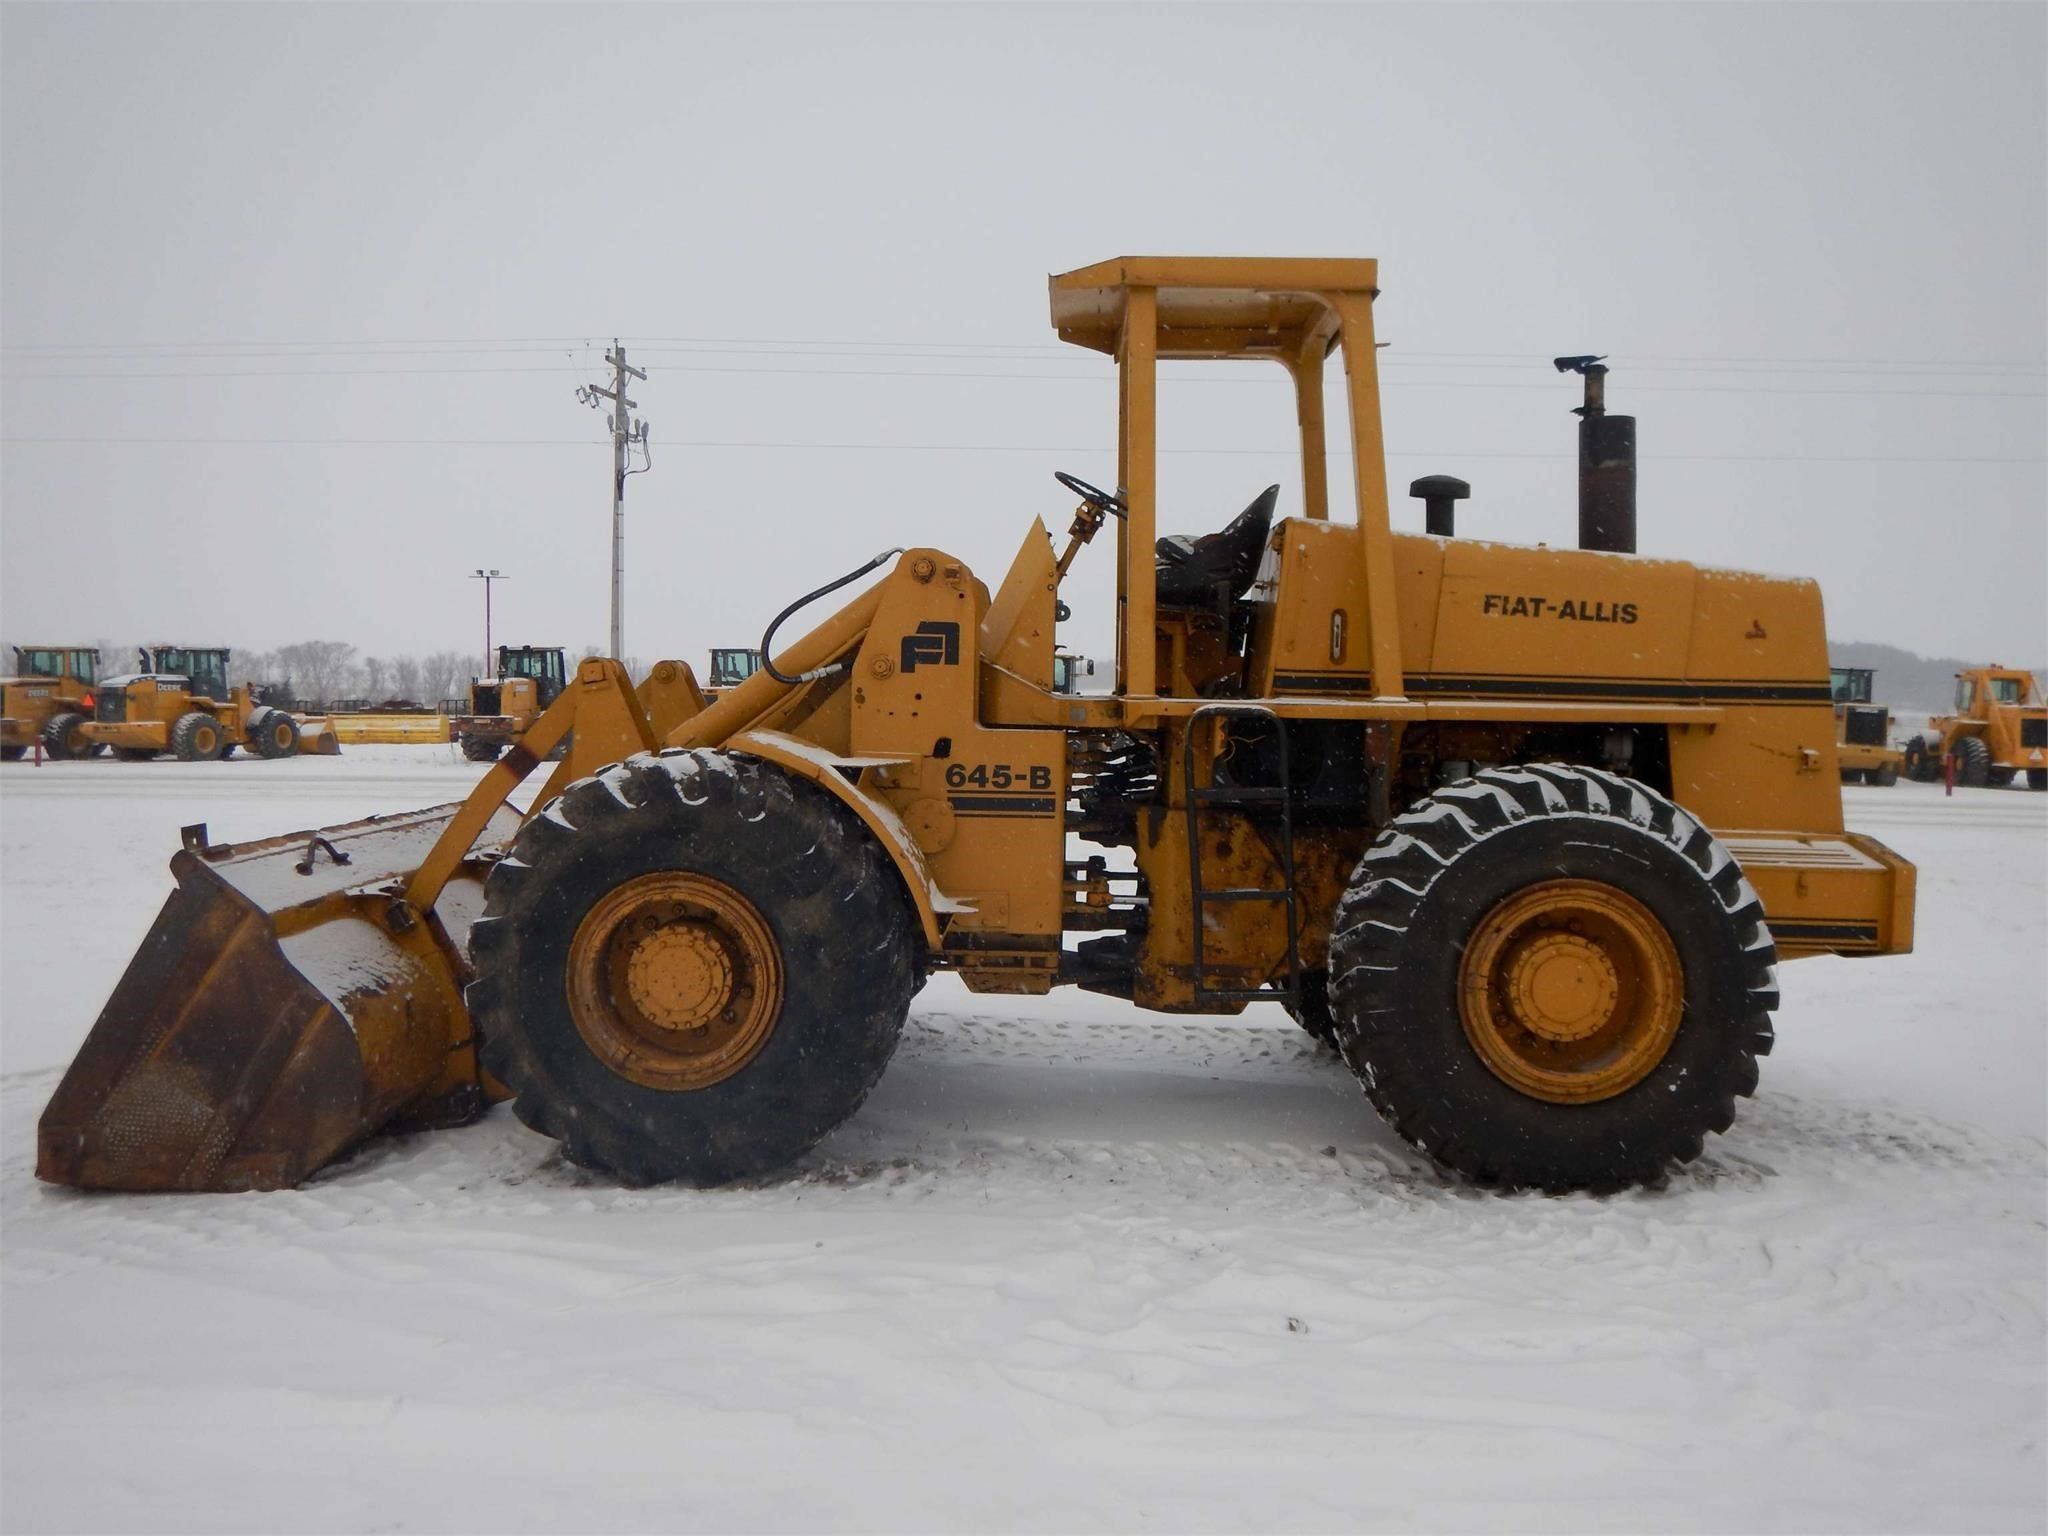 1978 Fiatallis 645B Wheel Loader